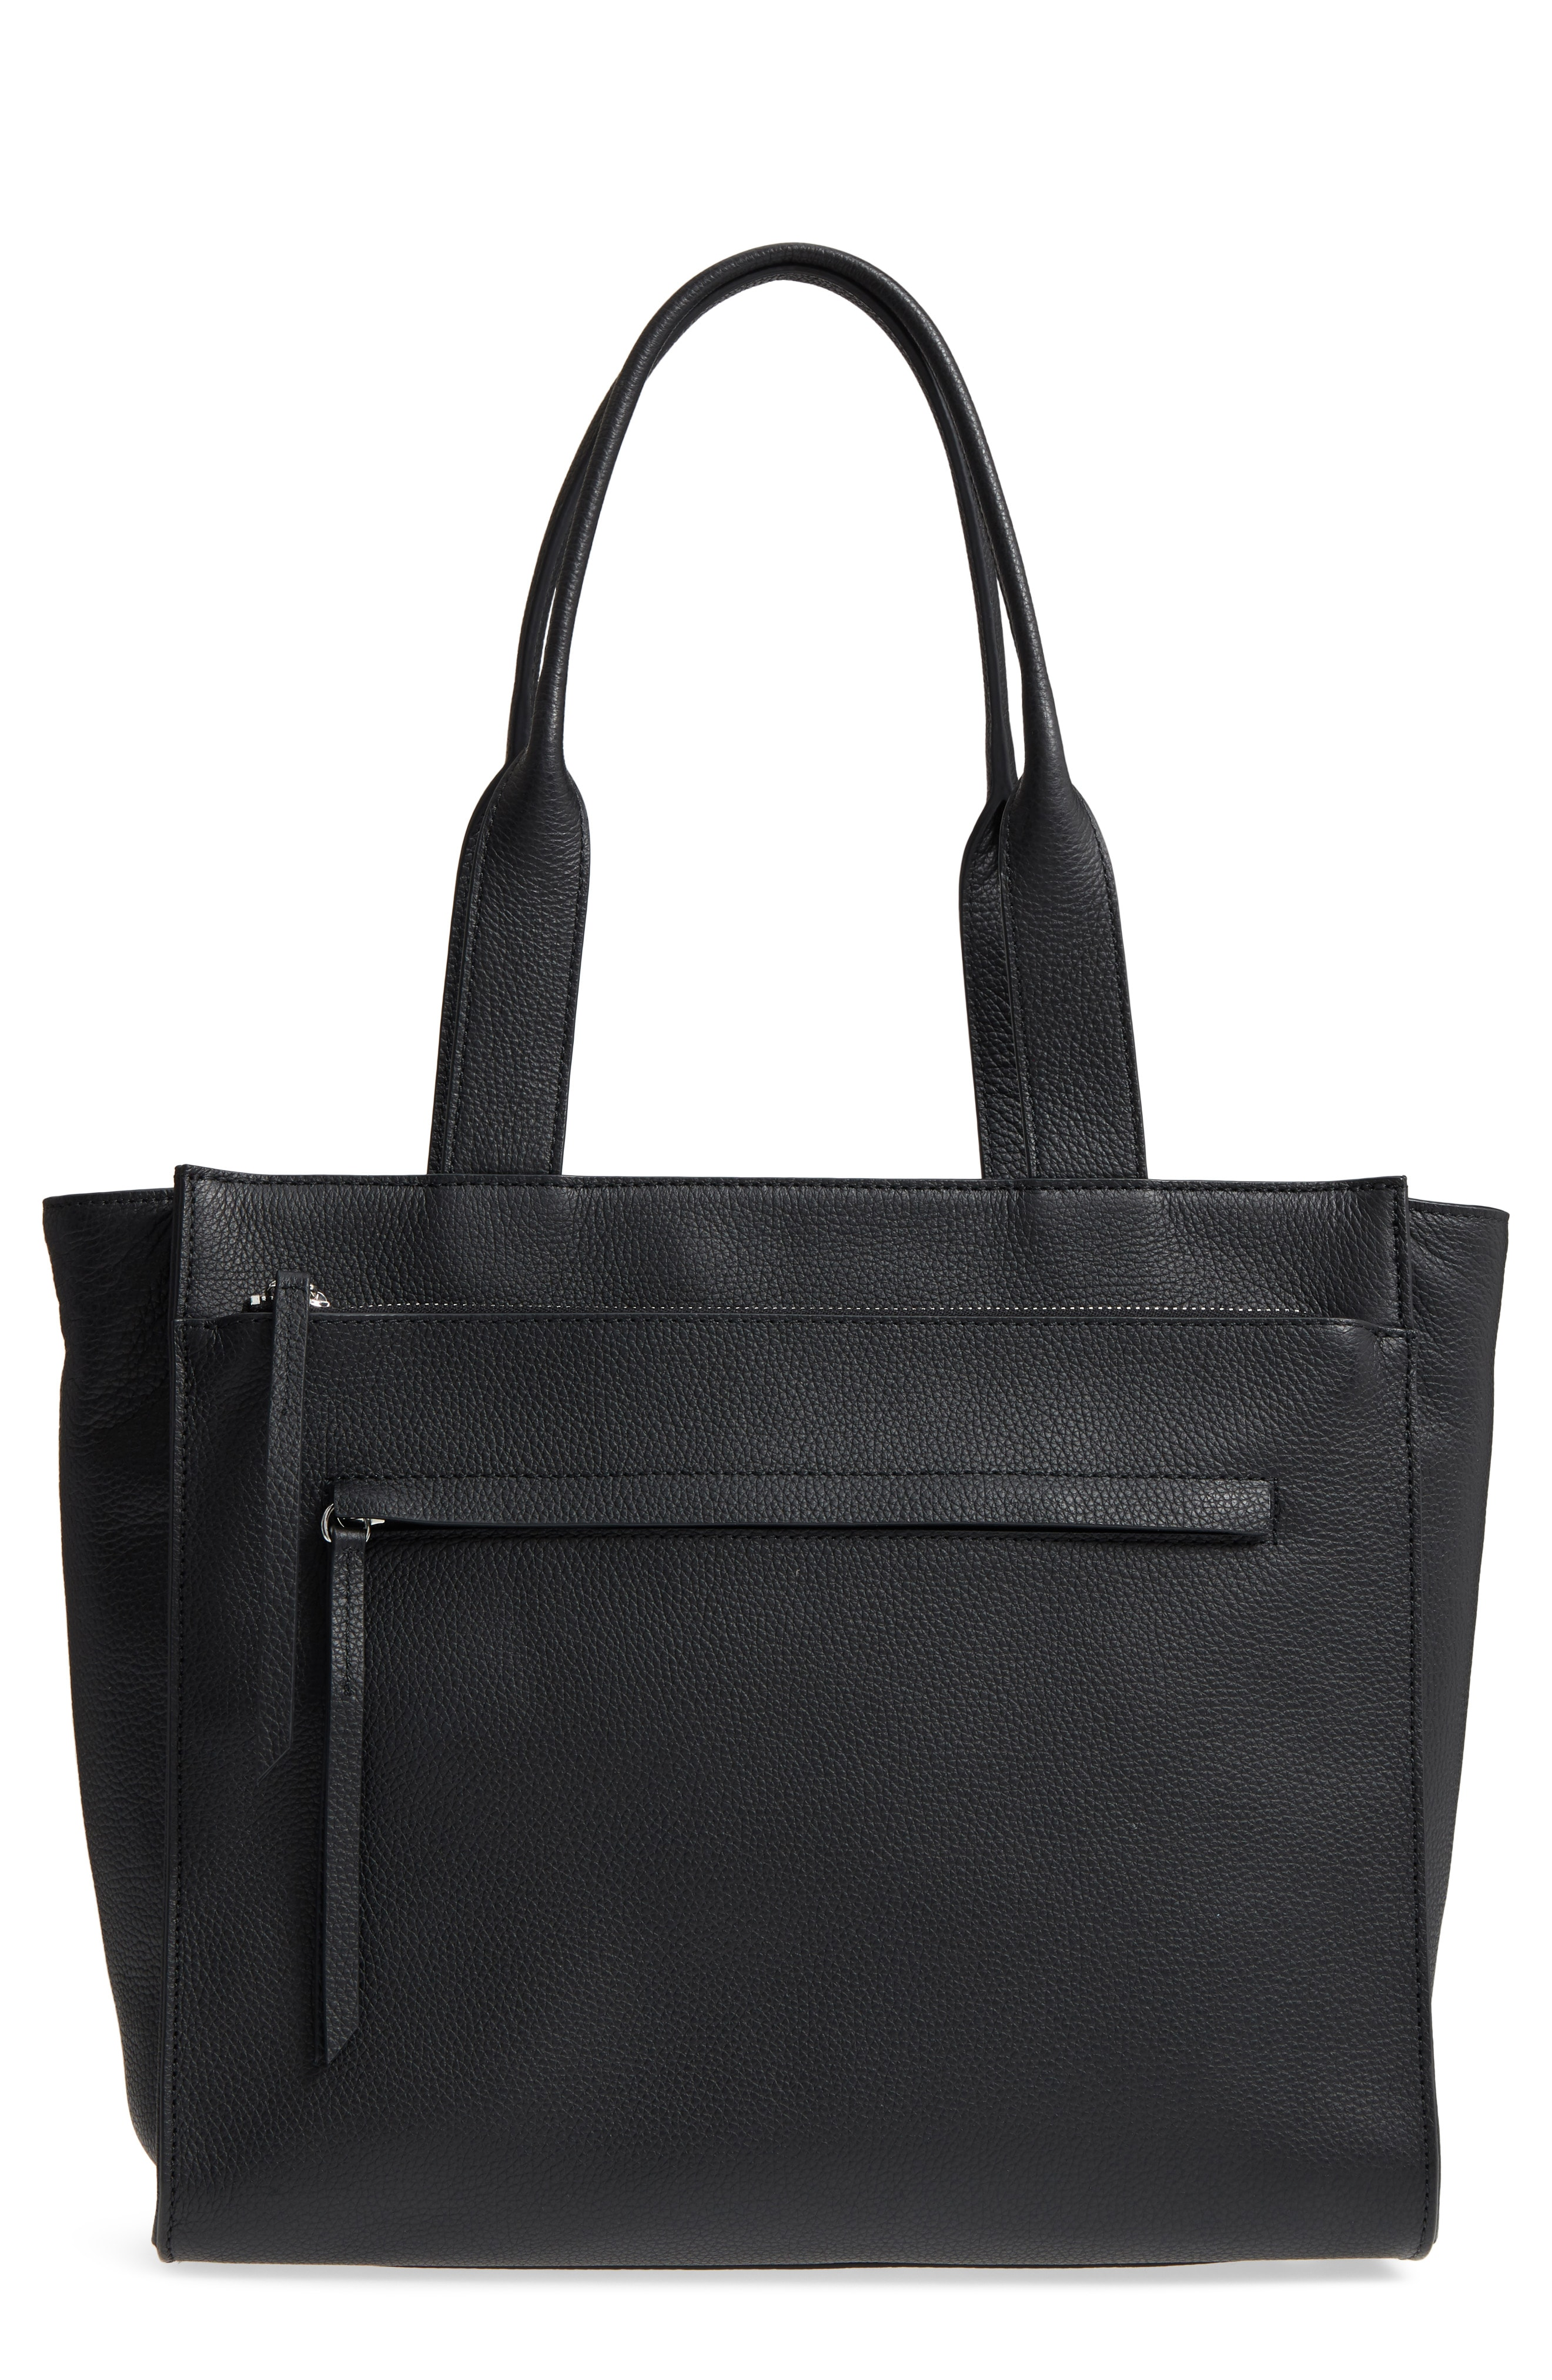 Black Handbags & Purses | Nordstrom